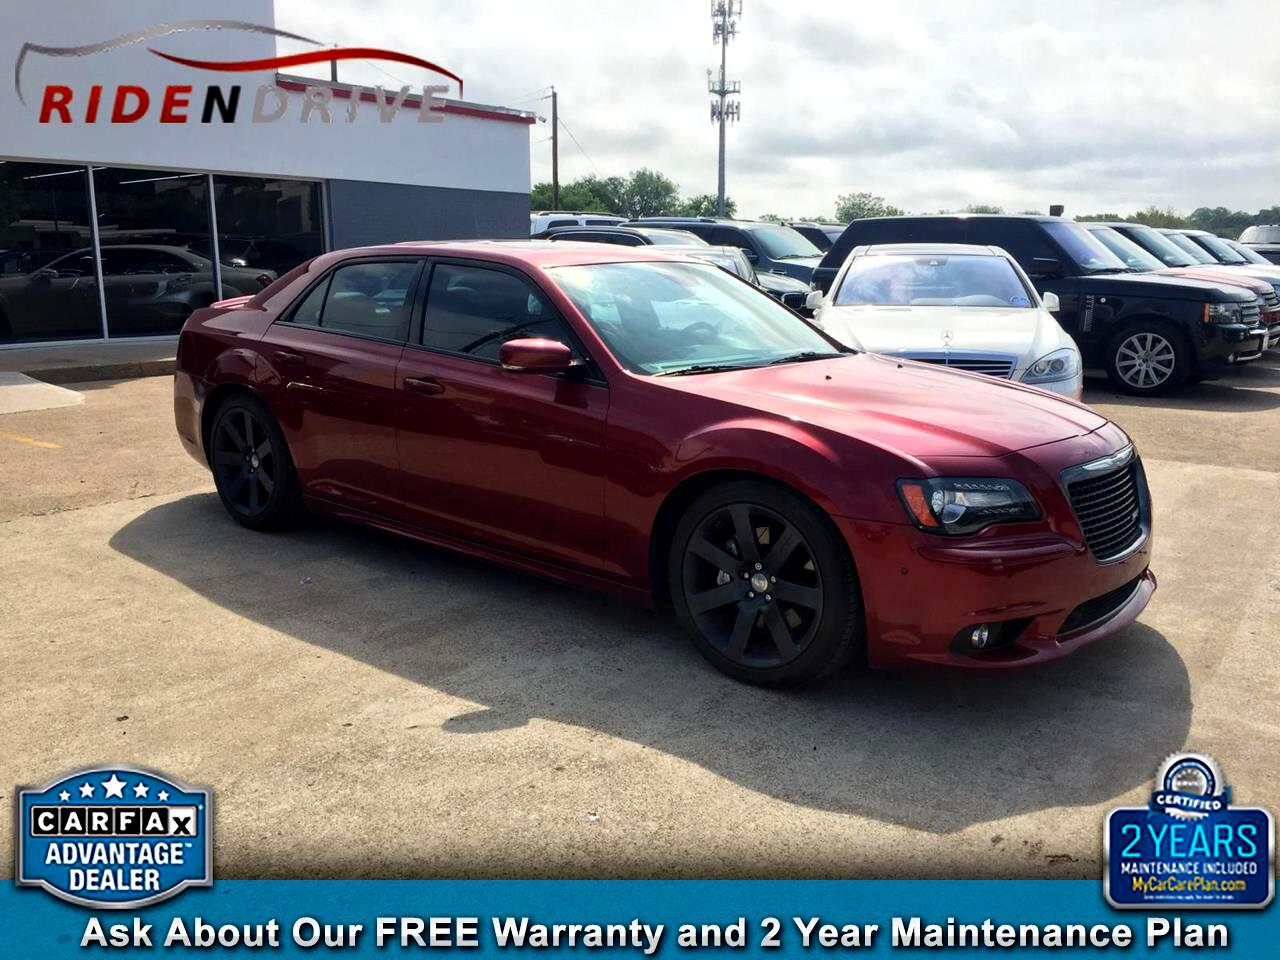 2014 Chrysler 300 4dr Sdn SRT8 RWD